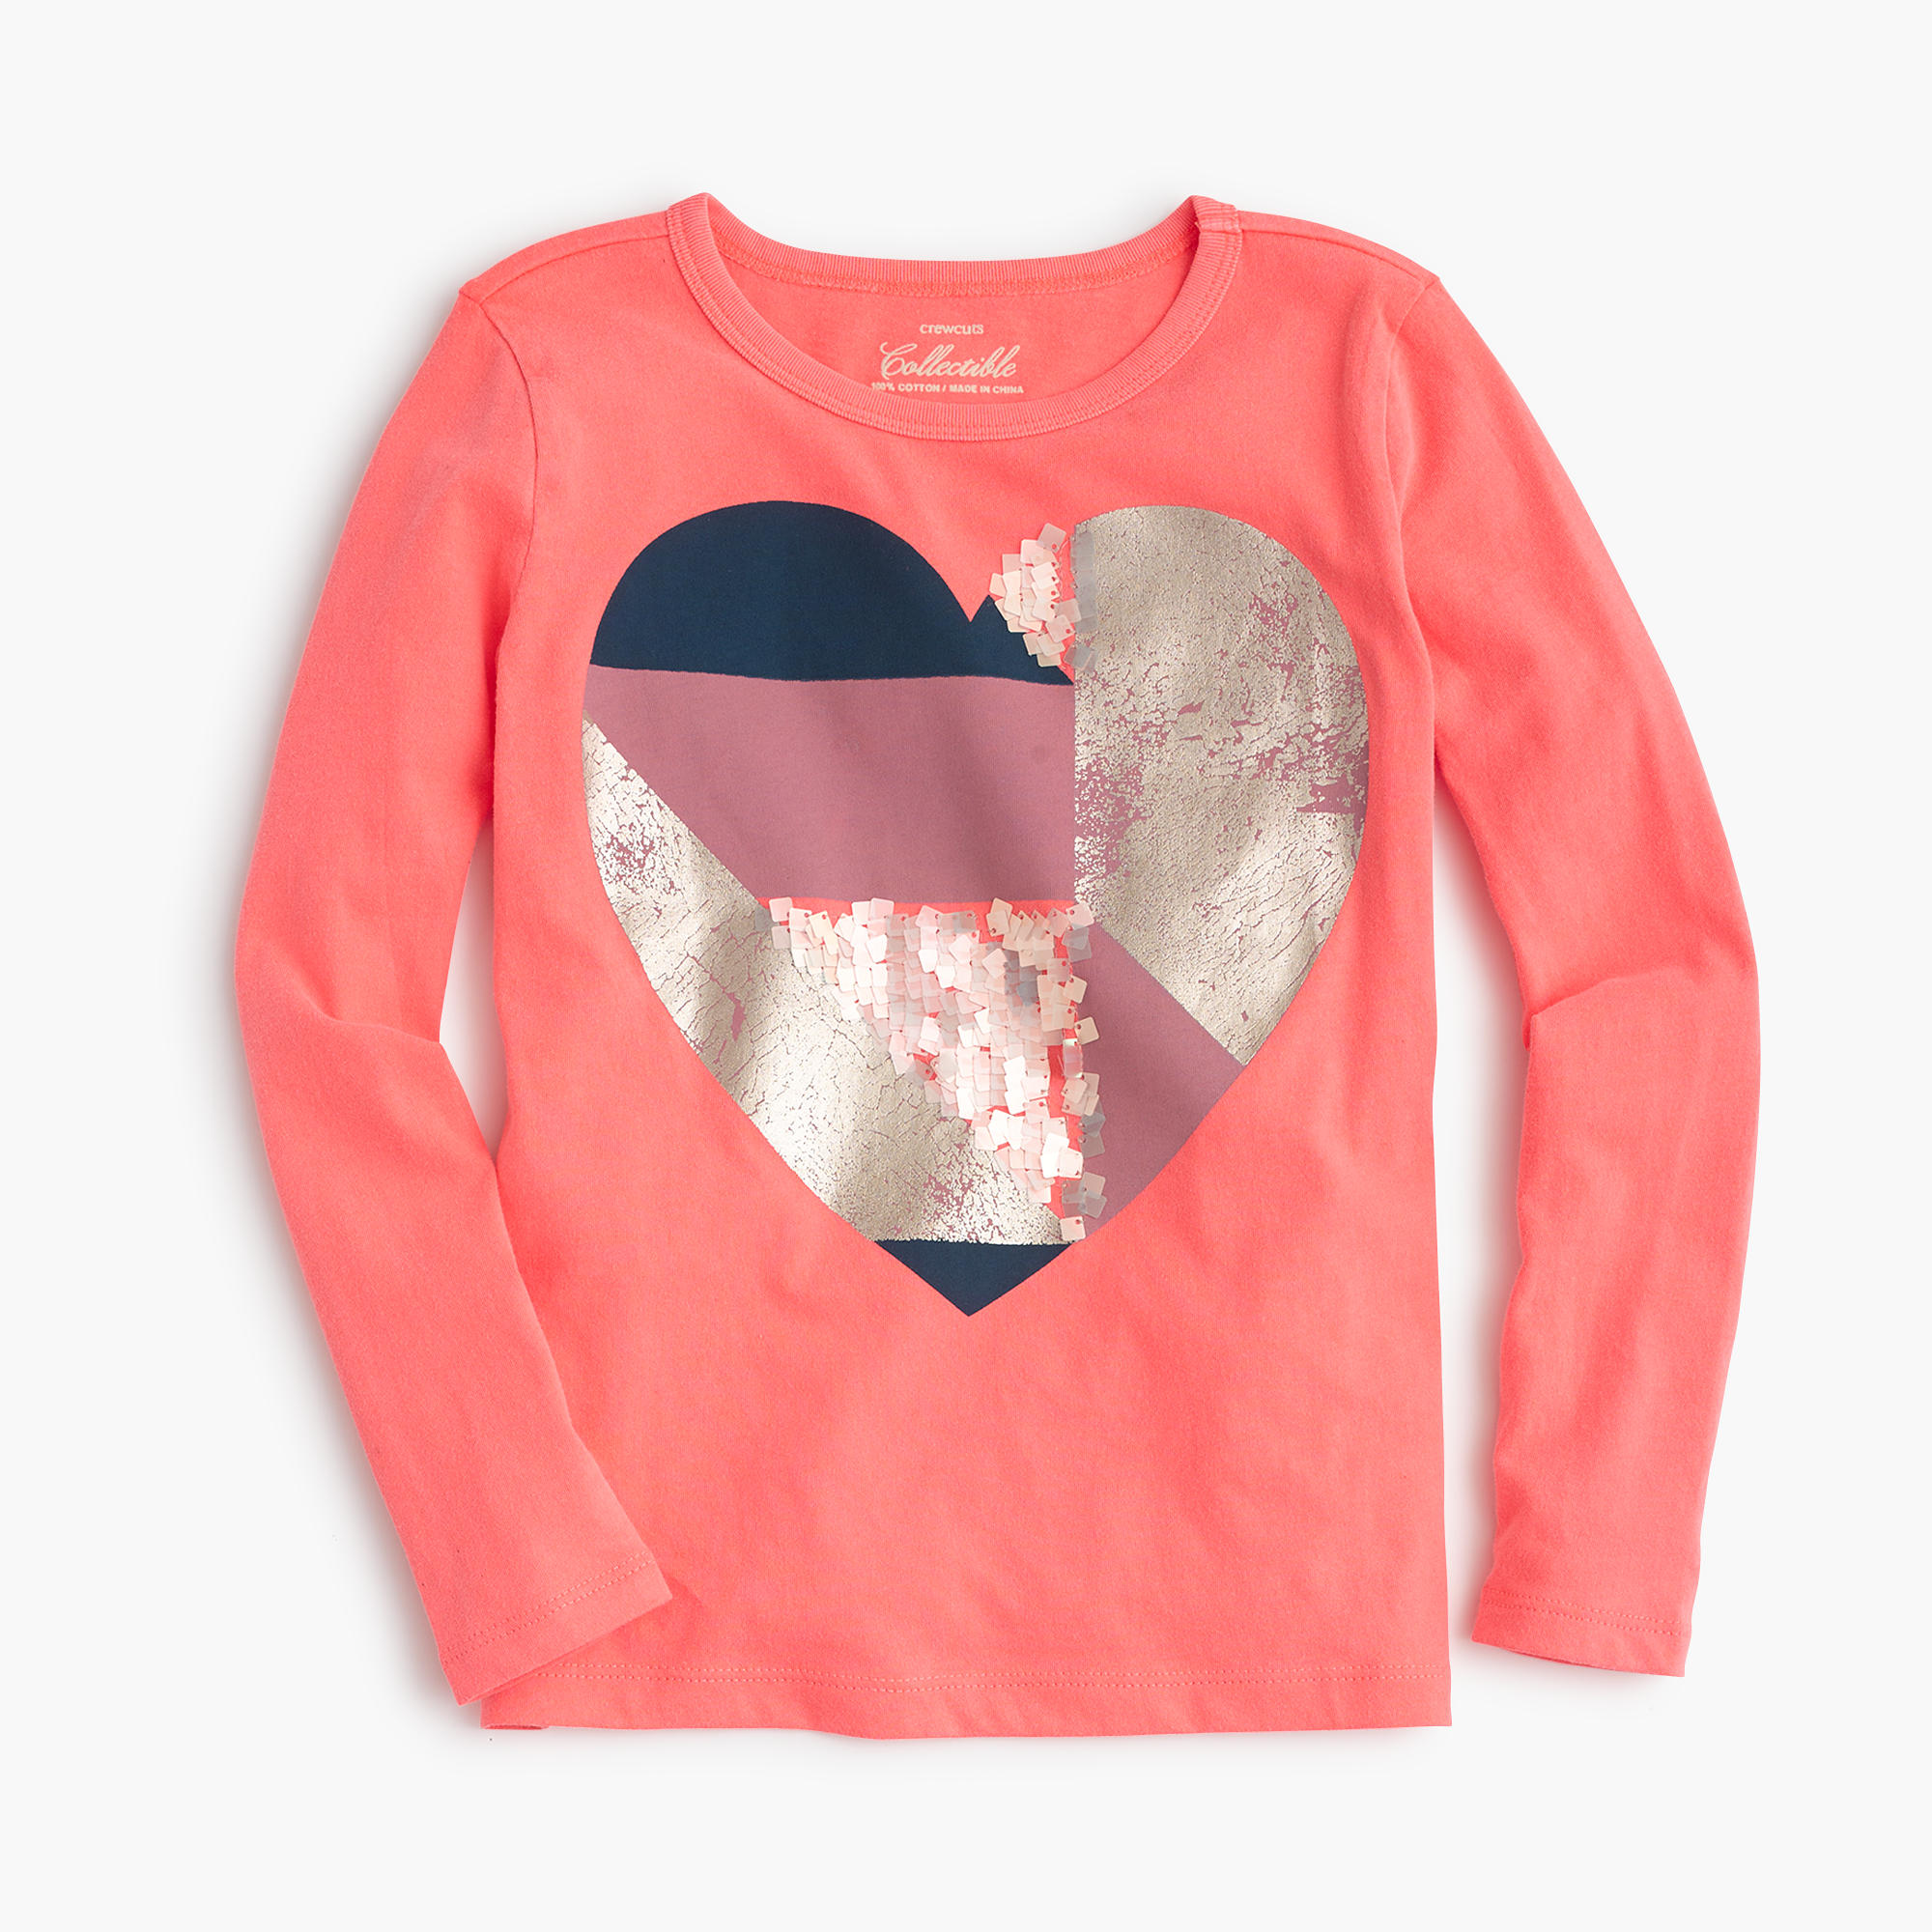 Girls 39 striped sequin heart t shirt j crew for Girls sequin t shirt